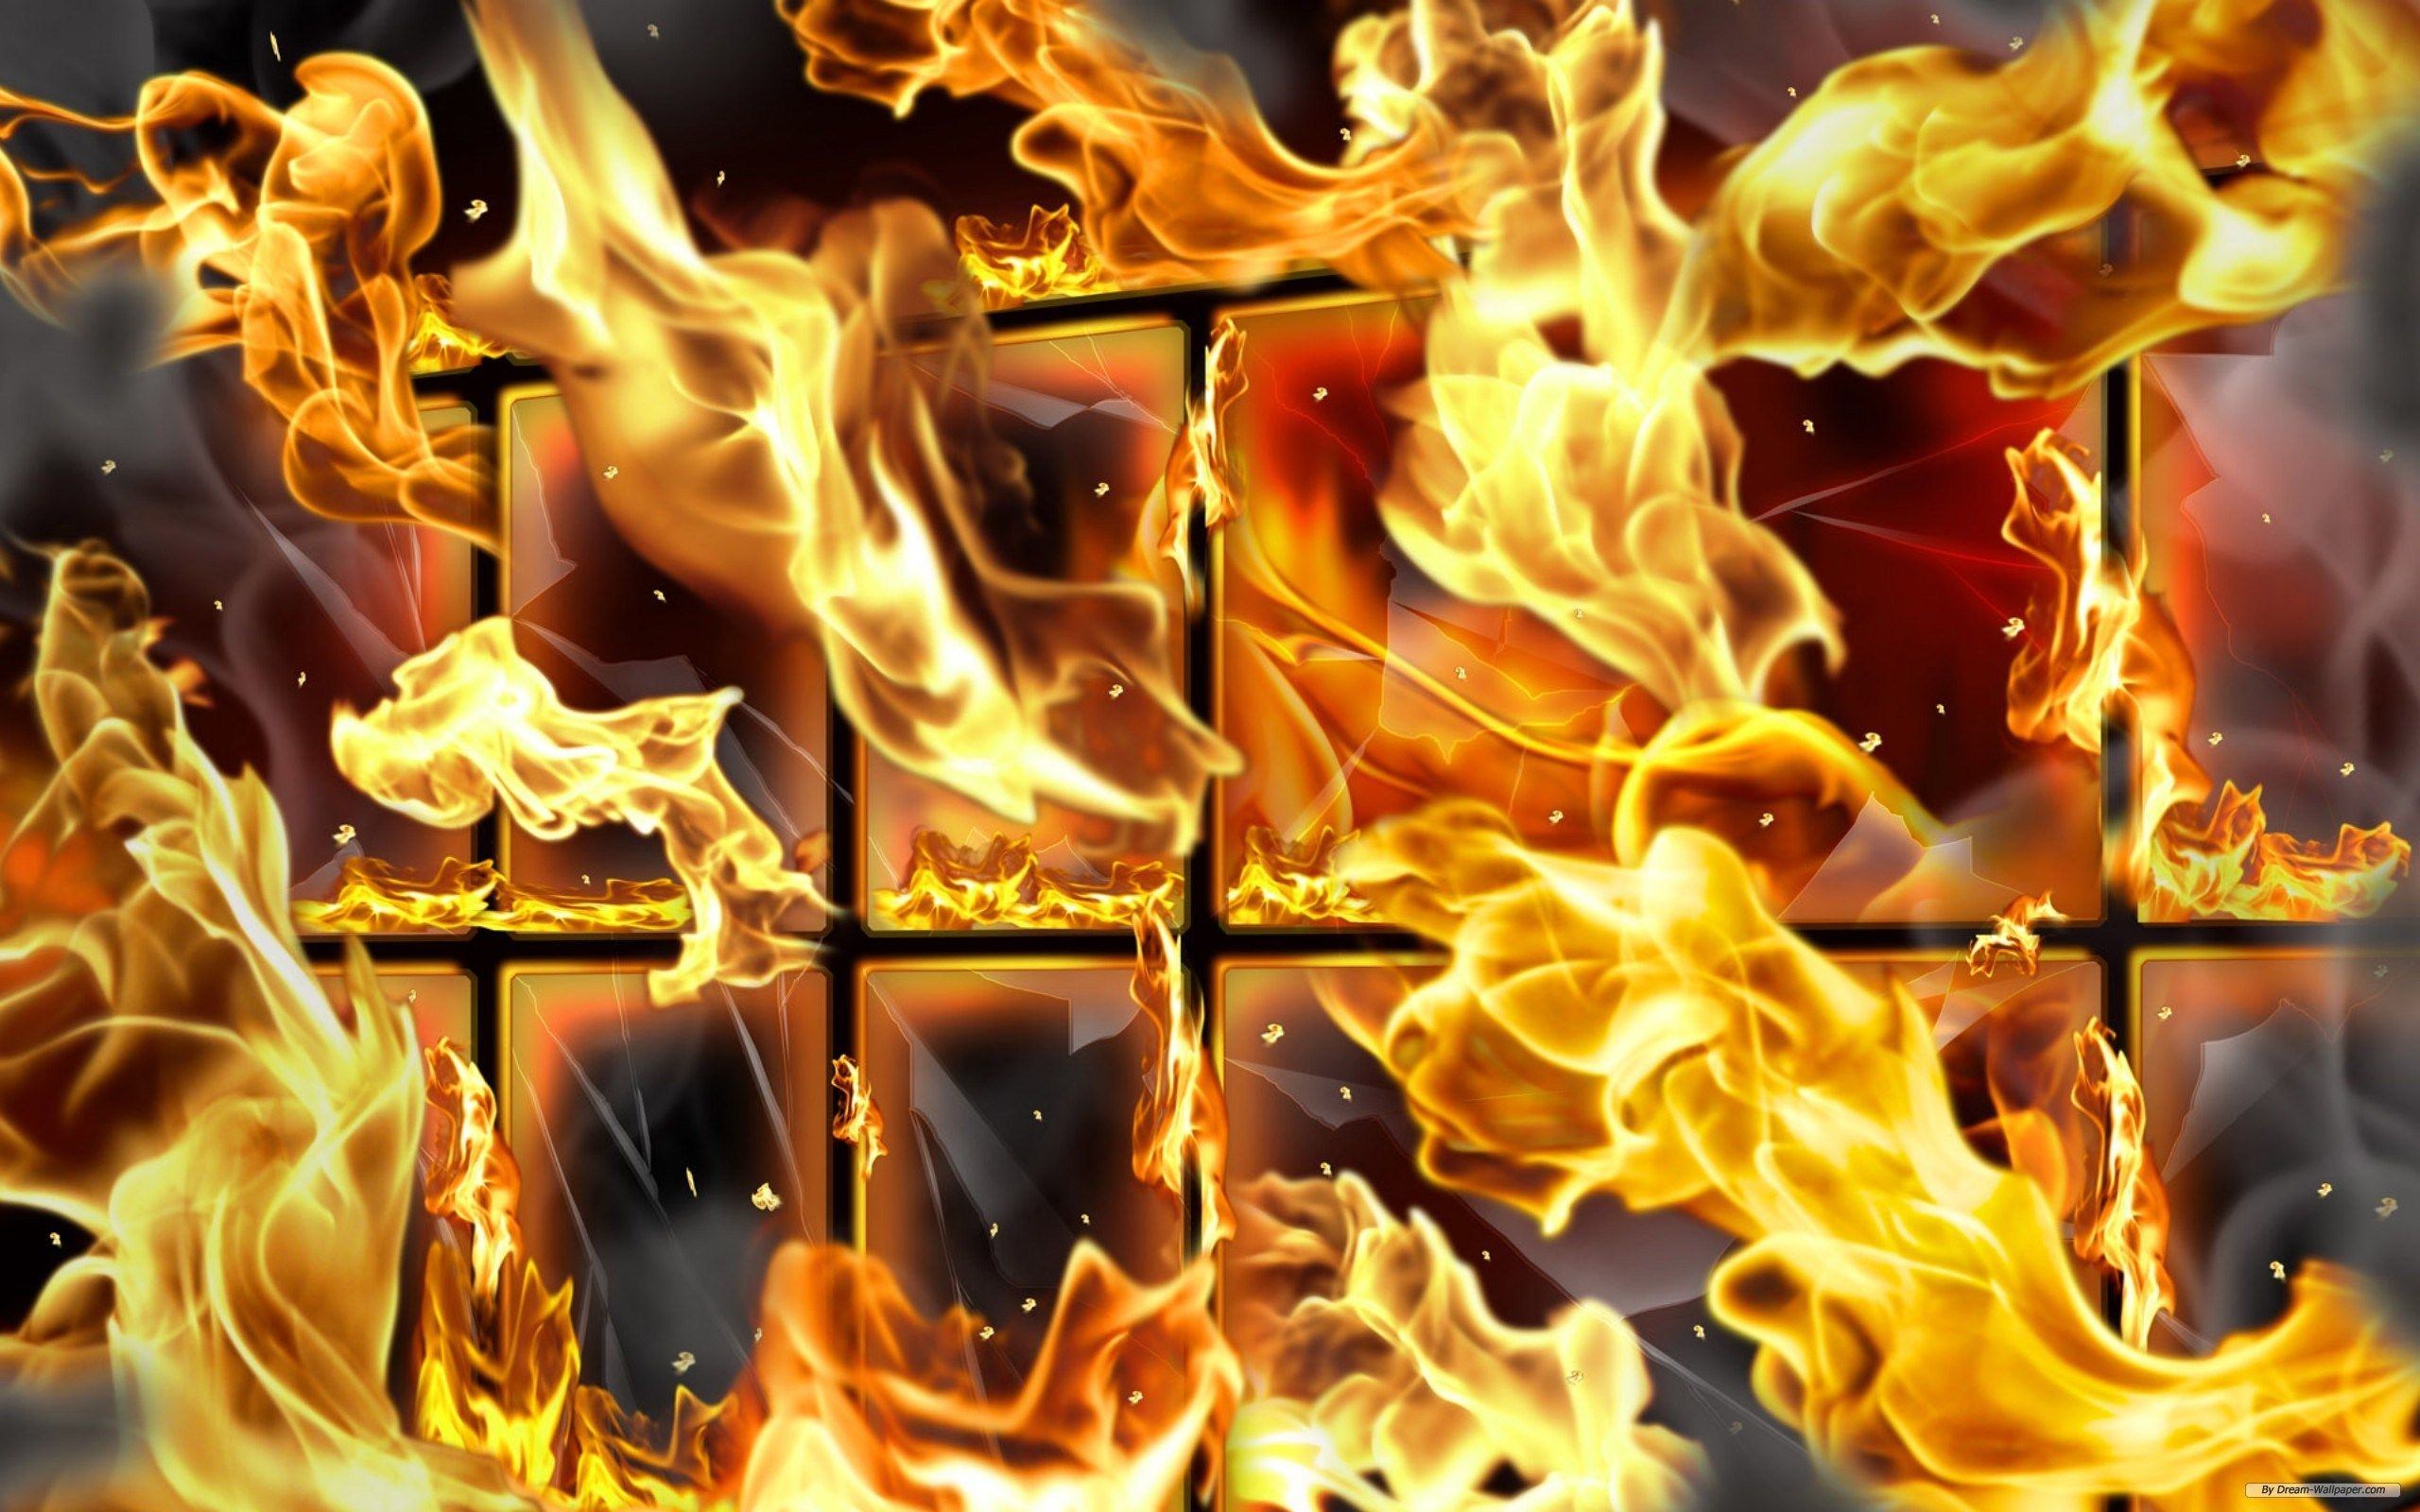 2560x1600 Free Fire Video Wallpaper Download 4k Wallpaper For Mobile Colors Of Fire